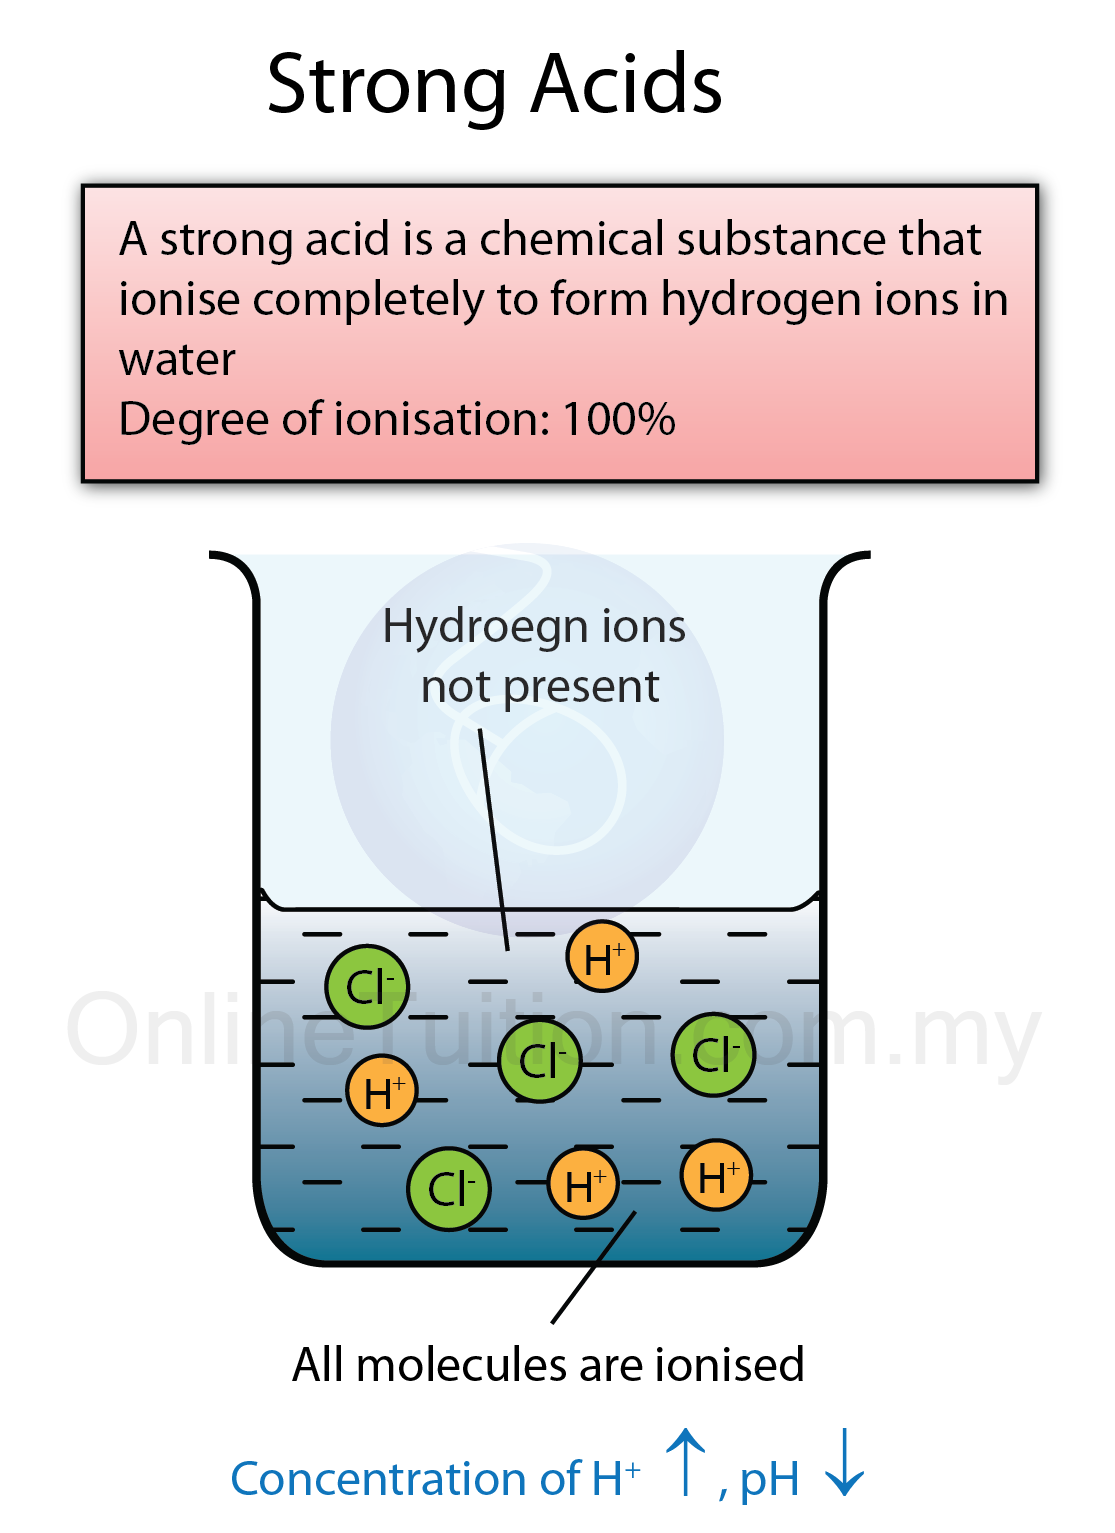 chemistry notes on strong acids Titration of a weak acid with a strong base (continued) added by allyb2106   here is my summary of acids and bases for leaving cert chemistry the notes.